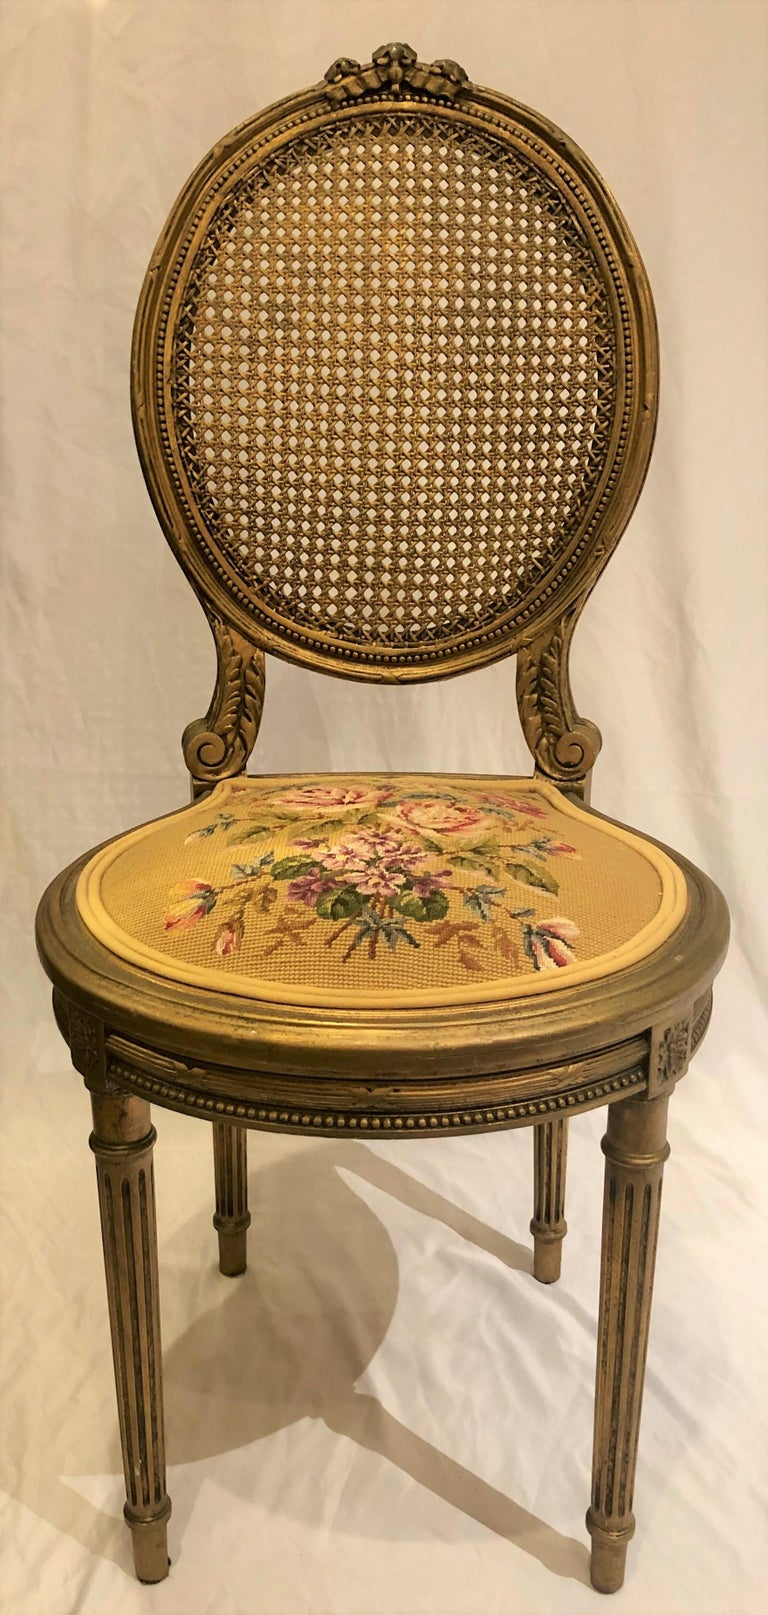 Antique French carved wood gilt side chair, circa 1870-1880 FOC061.